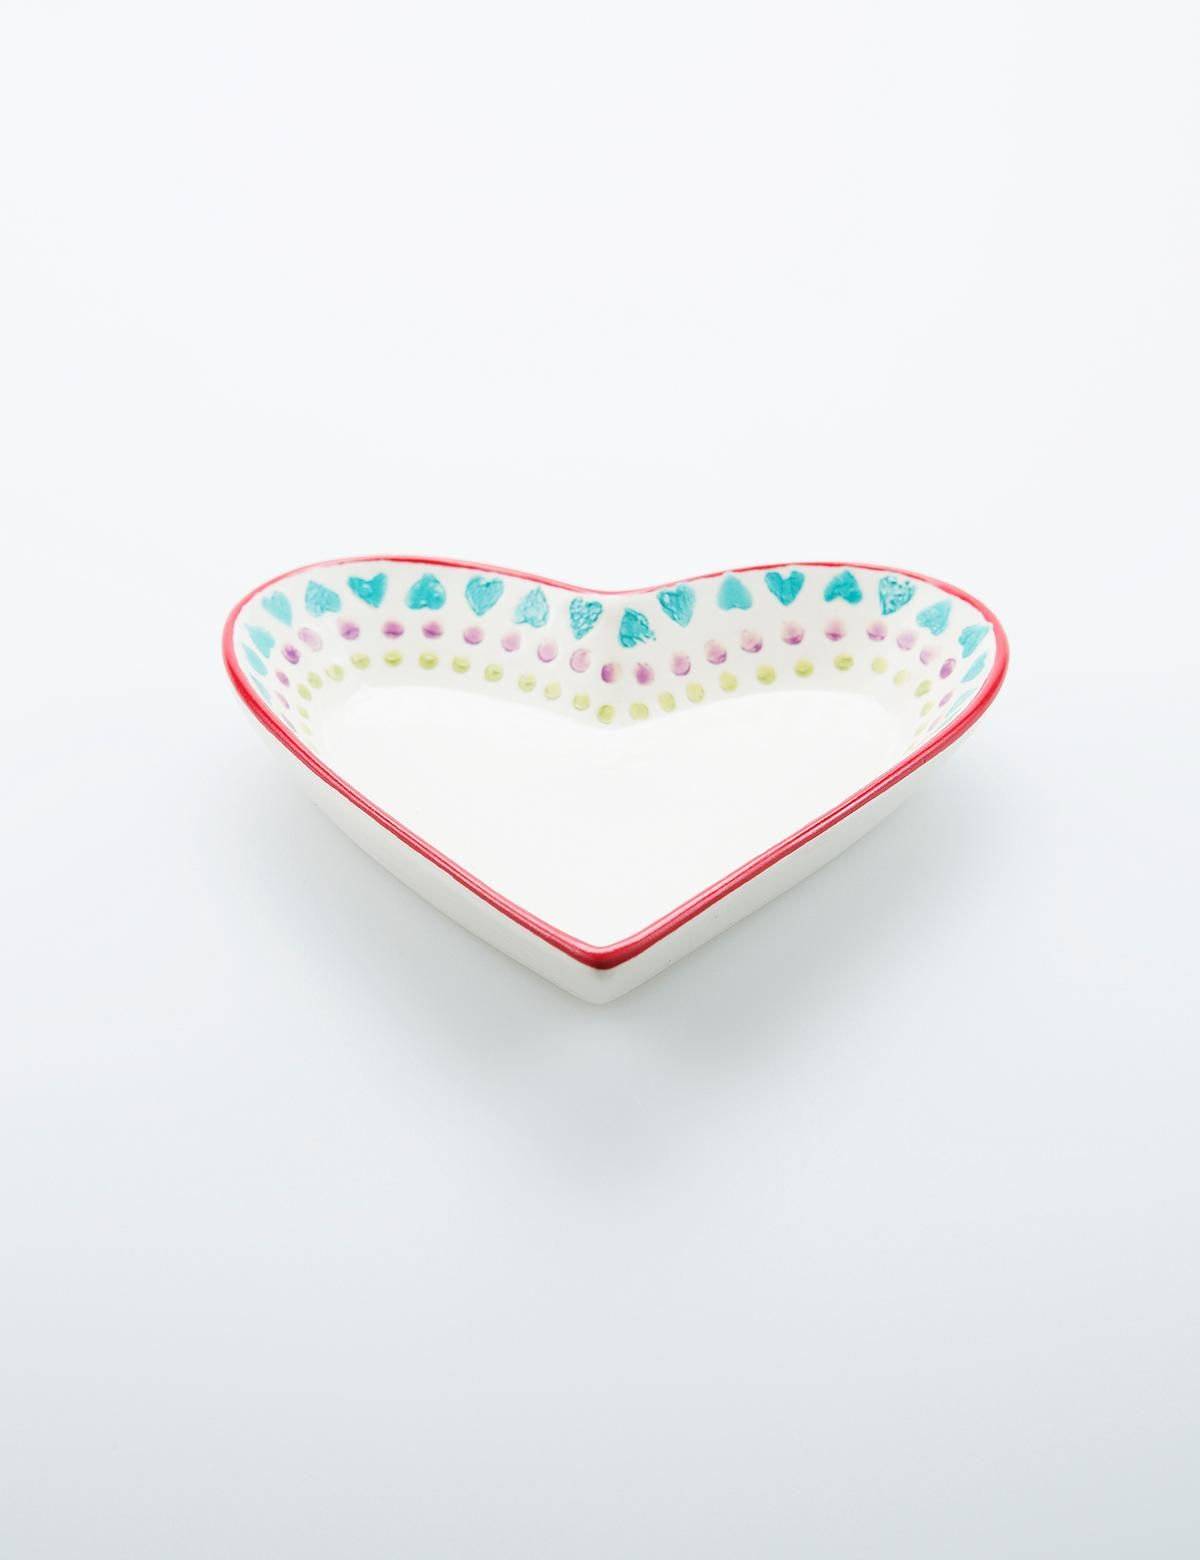 SWEETHEART Plate Multi | Plates | Ceramic/glass | Glass And Porcelain |  Interior |